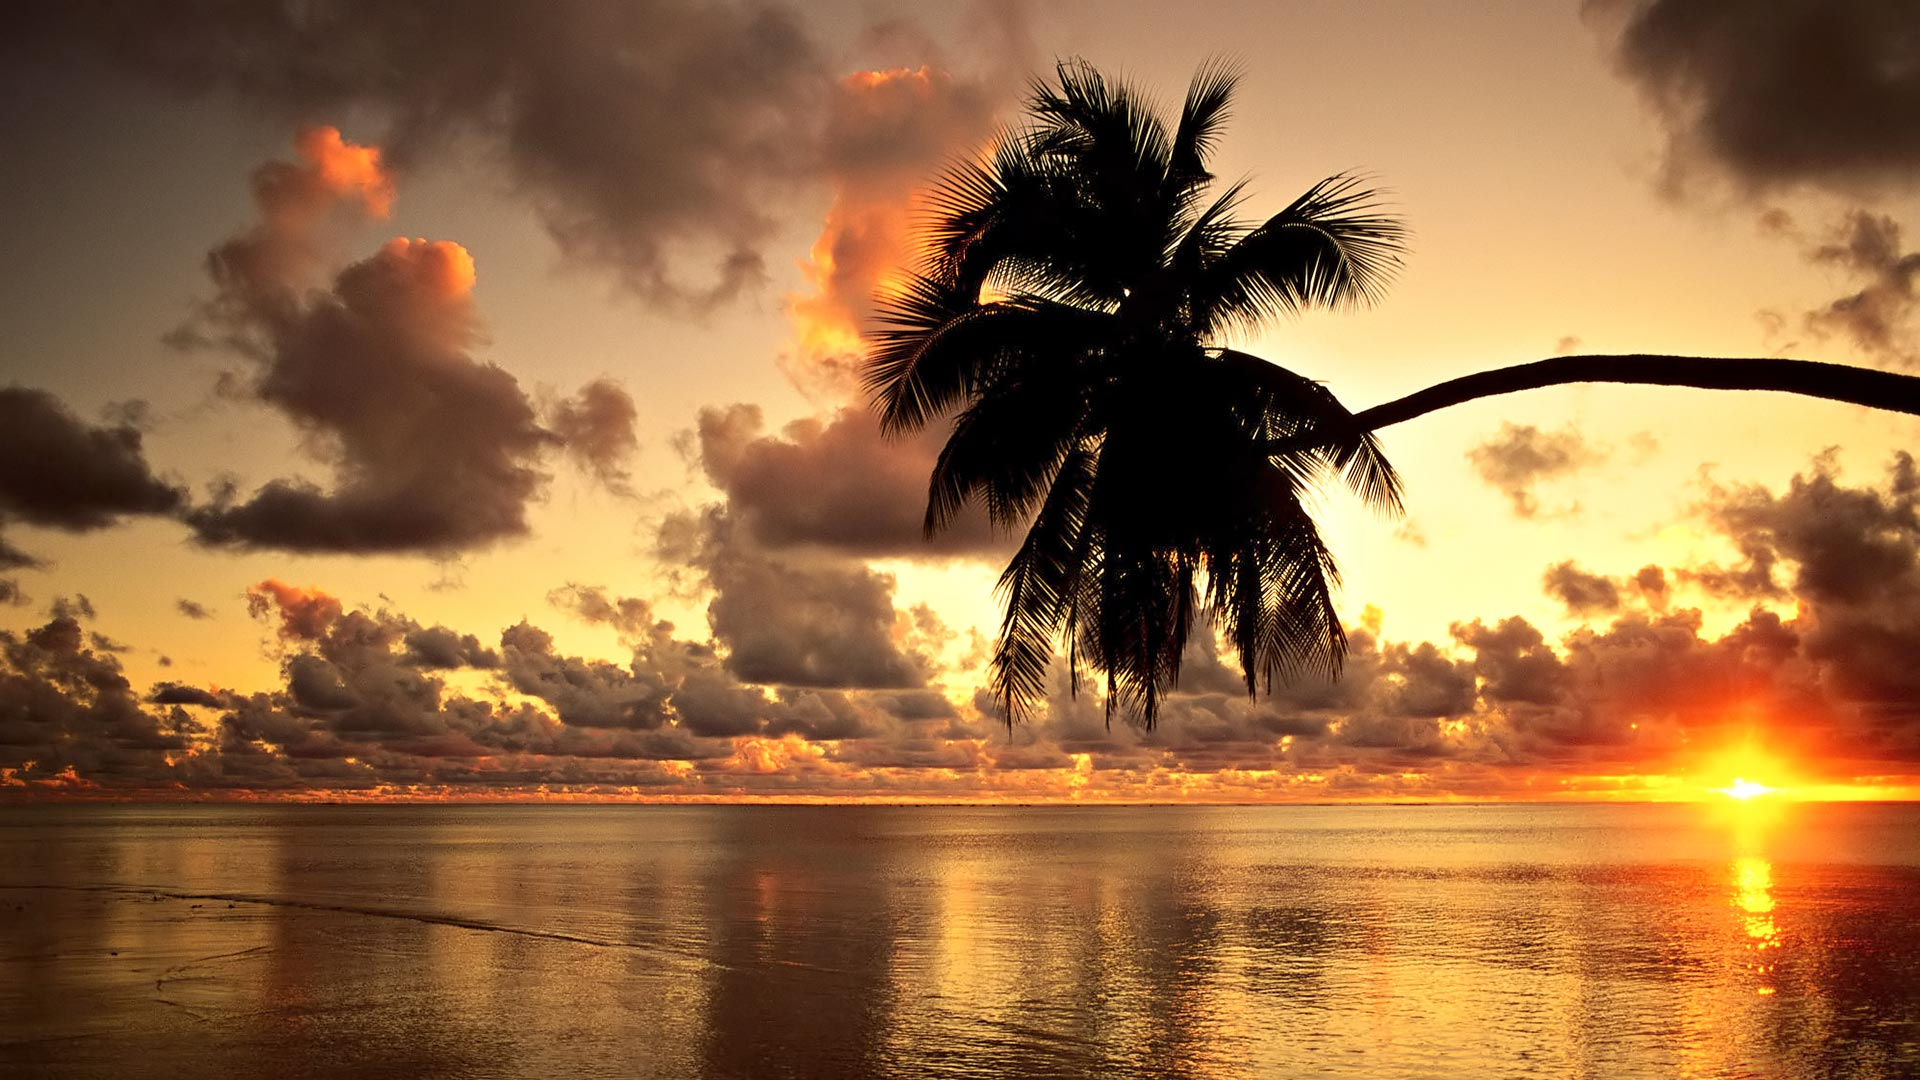 Hawaii-Sunset-Beach-desktop-background-new-hd-wallpaper-